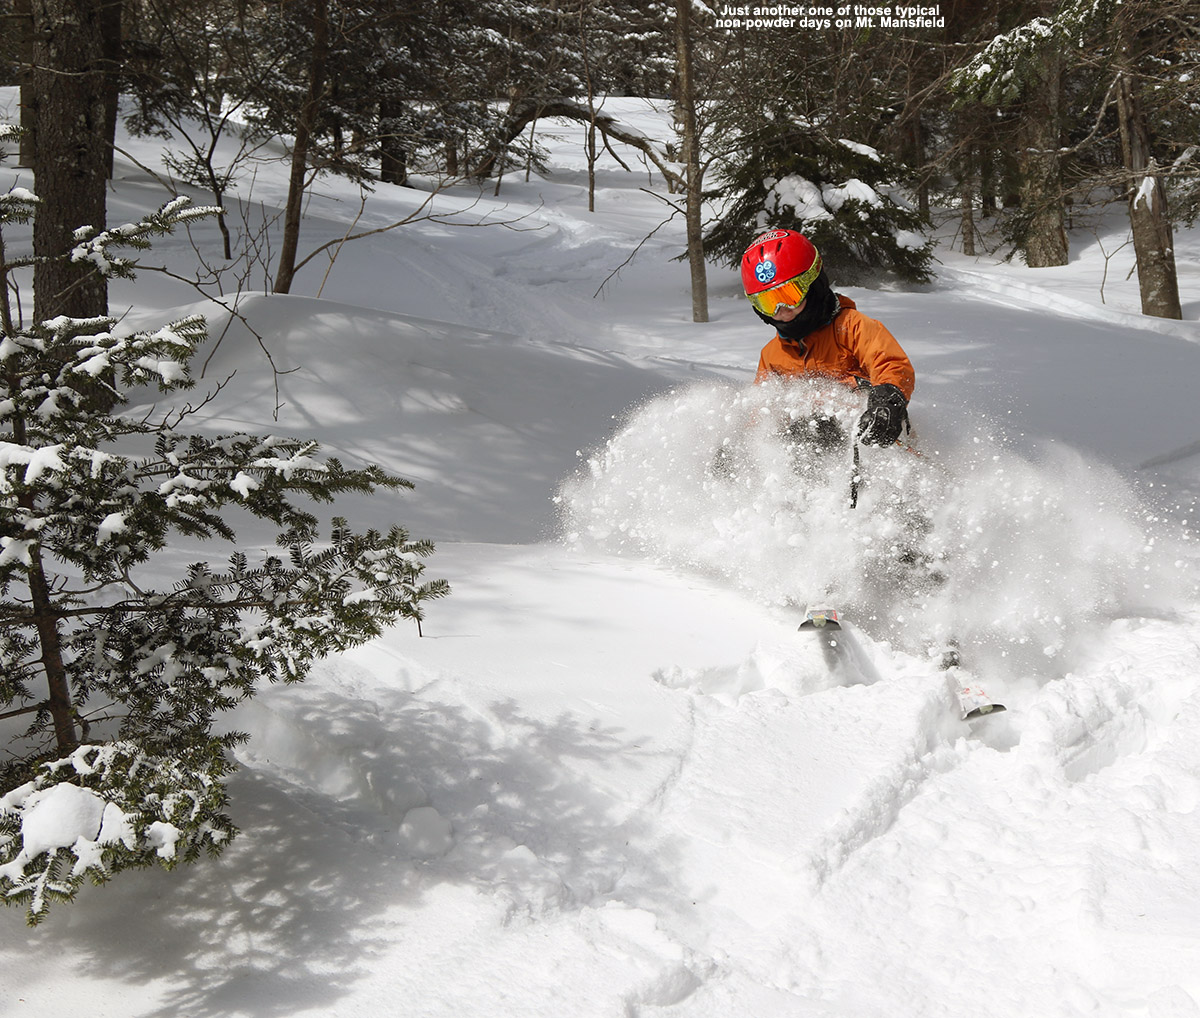 An image of Dylan skiing powder snow out near the Angel Food area of Stowe Mountain Resort in Vermont